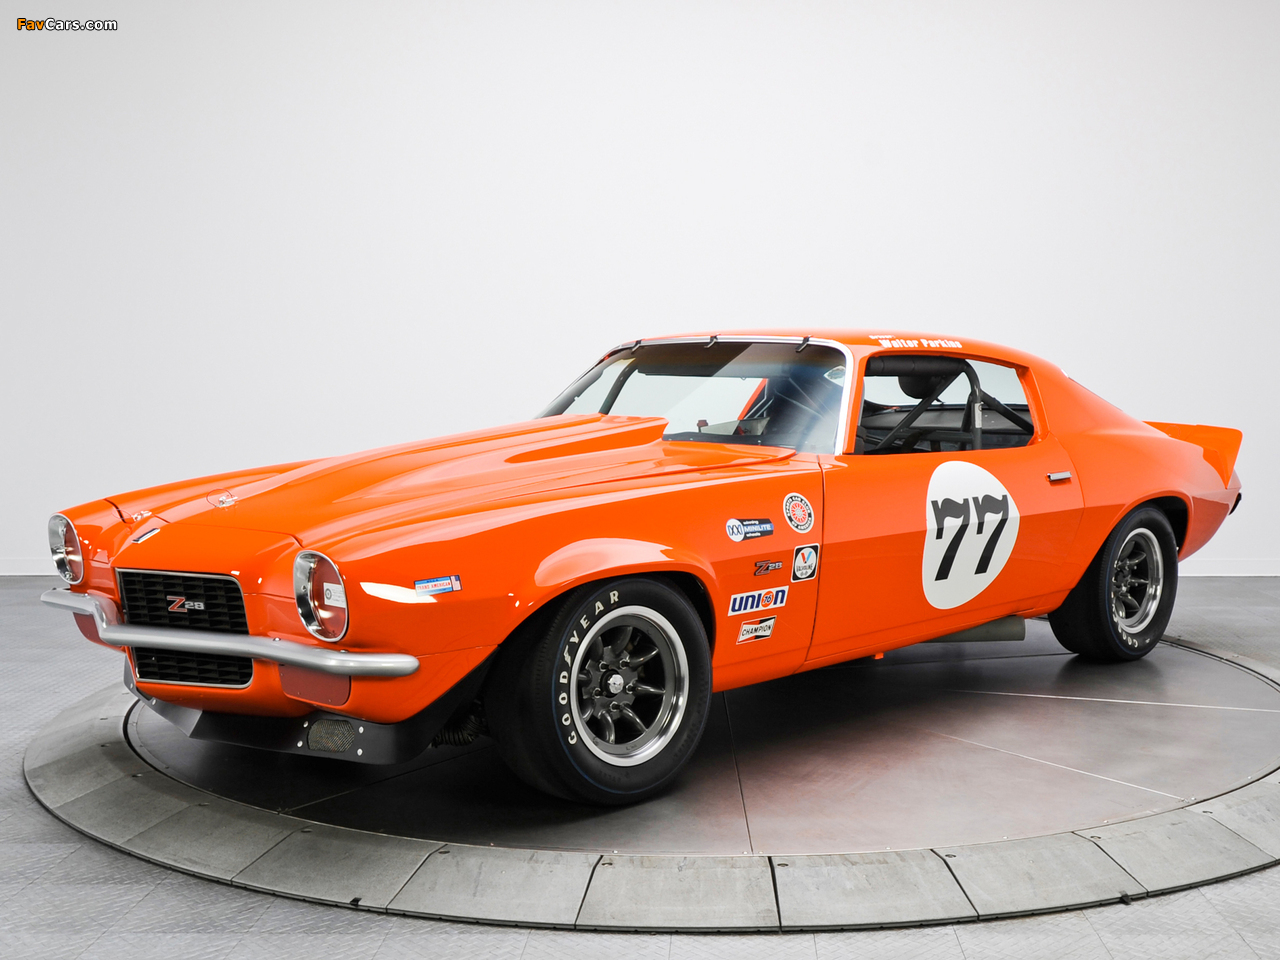 1024x768 Car Wallpapers Images Of Chevrolet Camaro Z28 Trans Am Race Car 1970